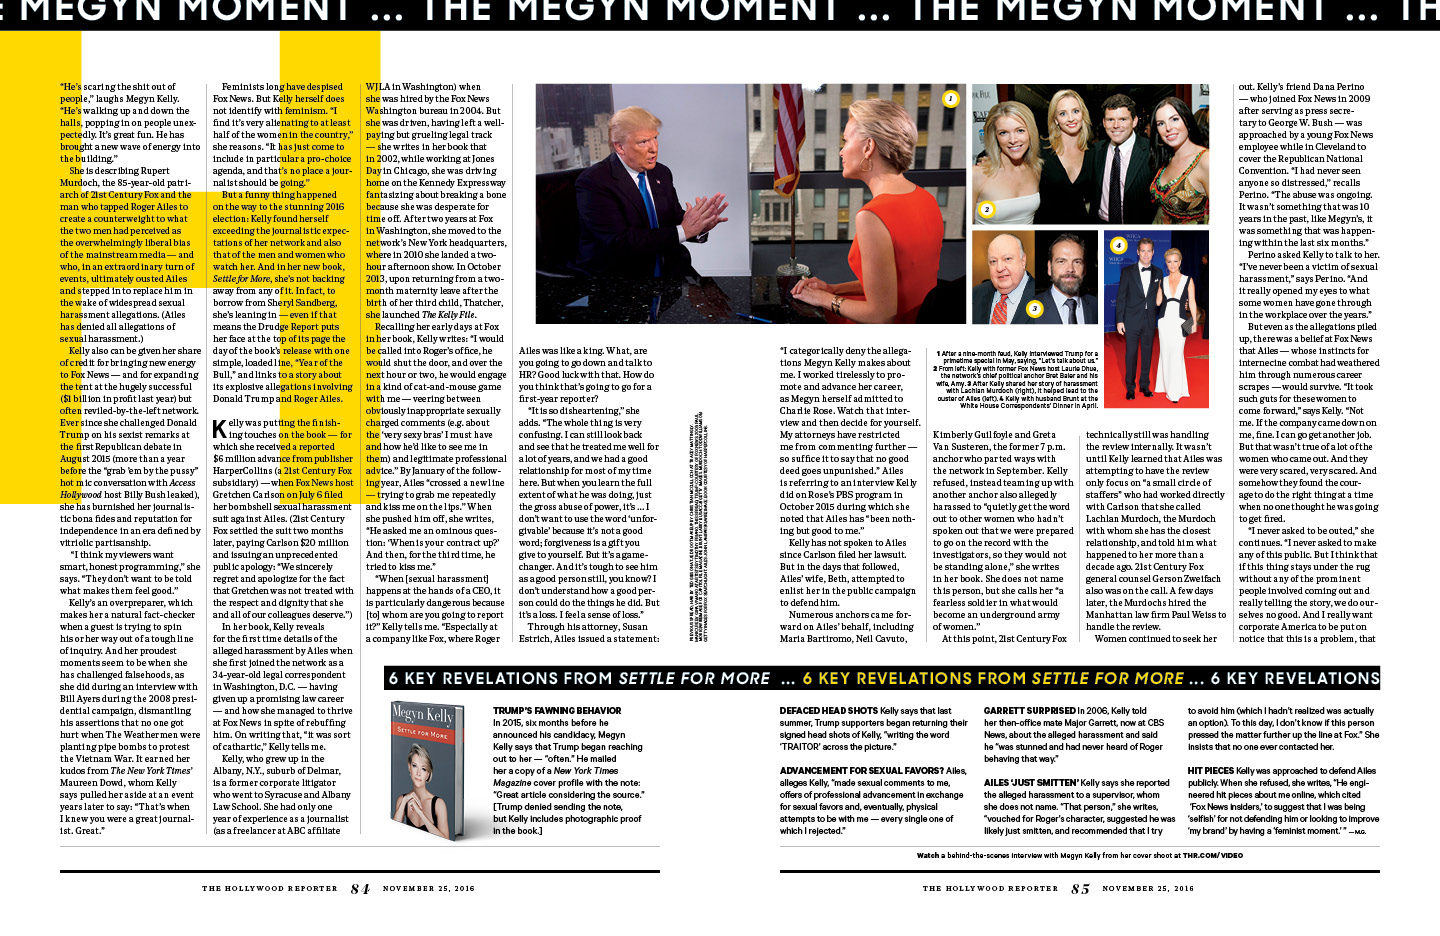 The Megyn Moment / The Hollywood Reporter / 11.25.16 / kelsey stefanson / art direction + graphic design / yeskelsey.com